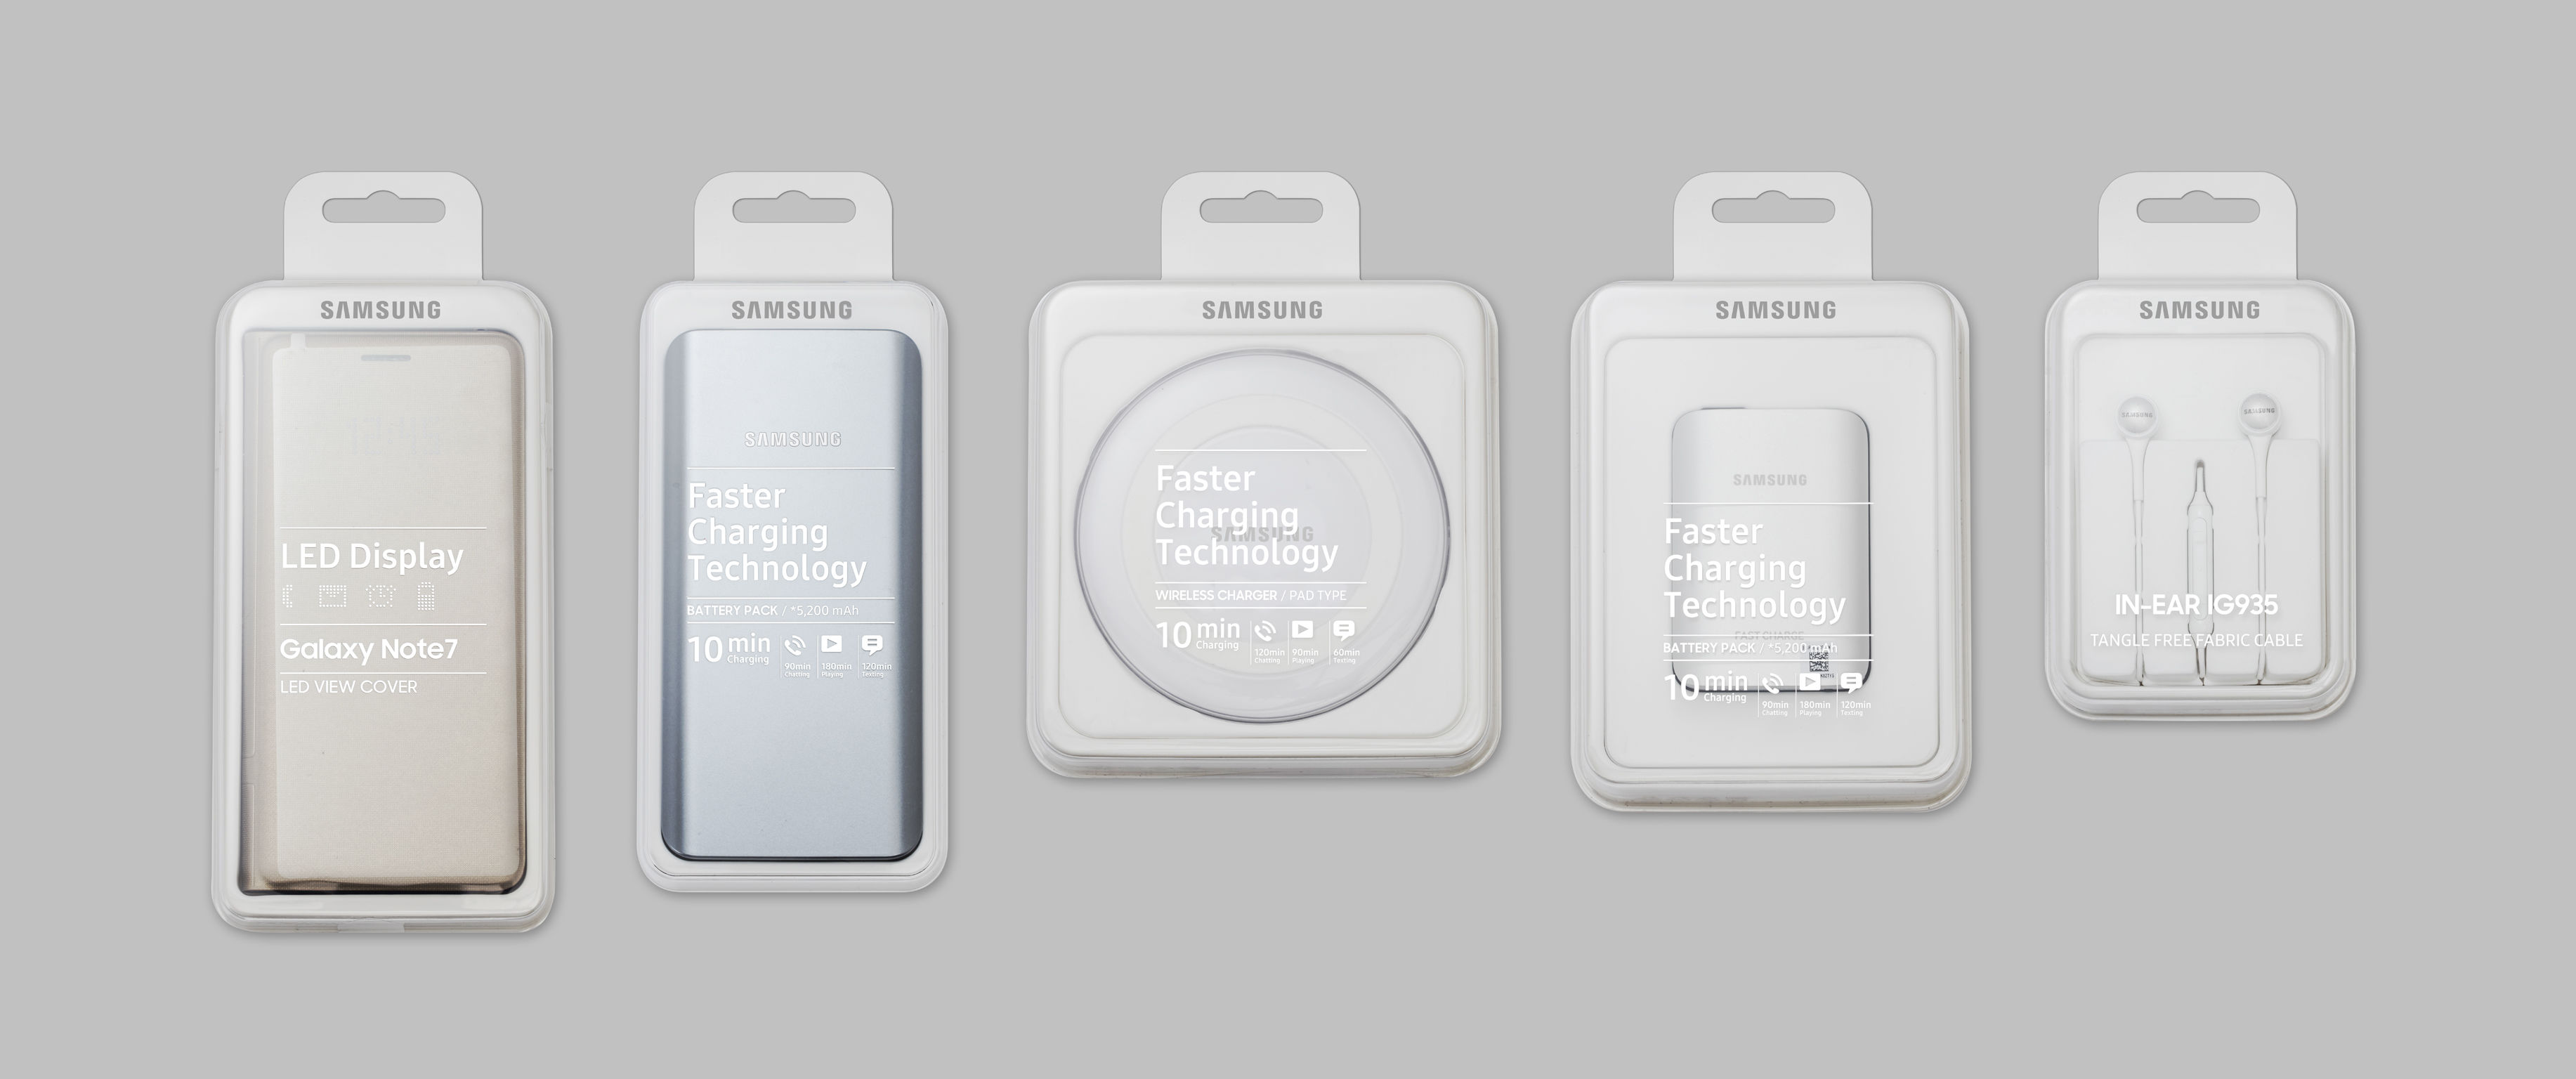 Samsung Accessory Package | iF WORLD DESIGN GUIDE